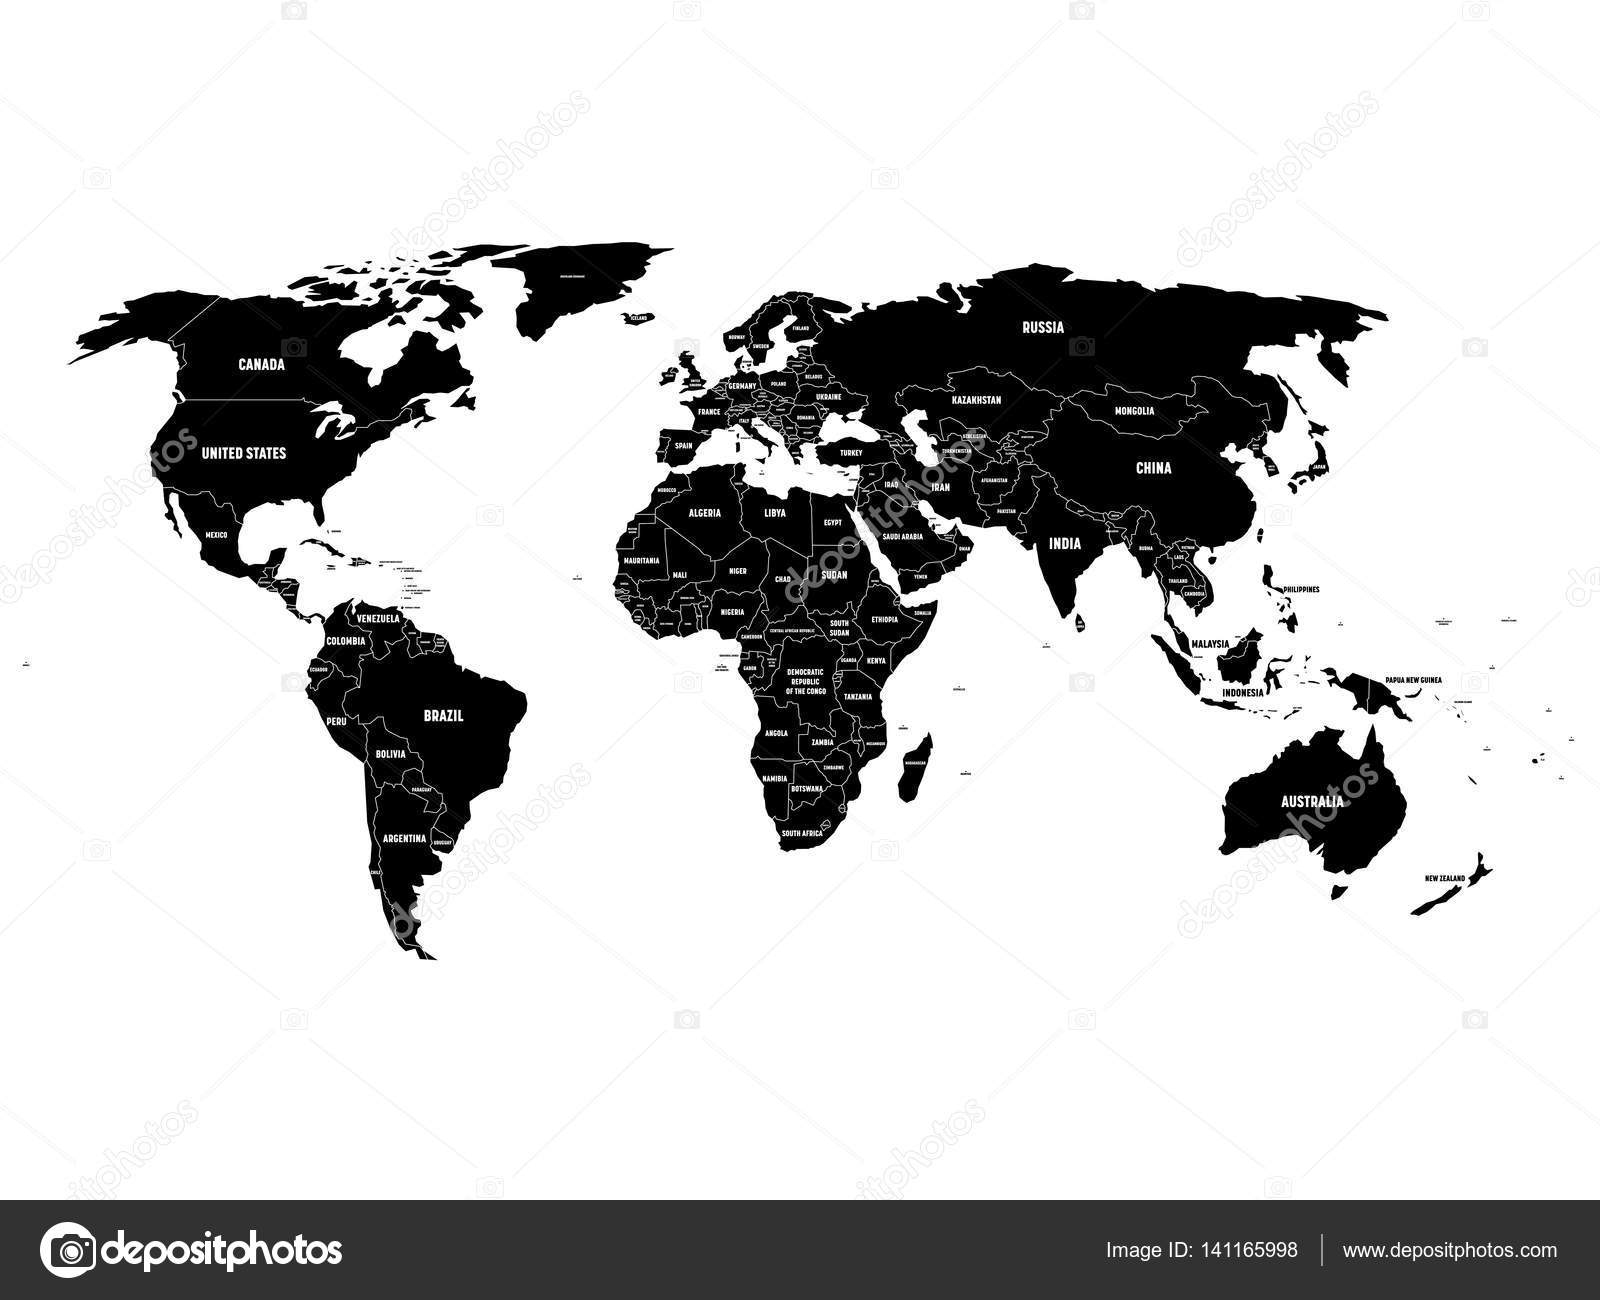 Black political world map with country borders and white state name black political world map with country borders and white state name labels hand drawn simplified gumiabroncs